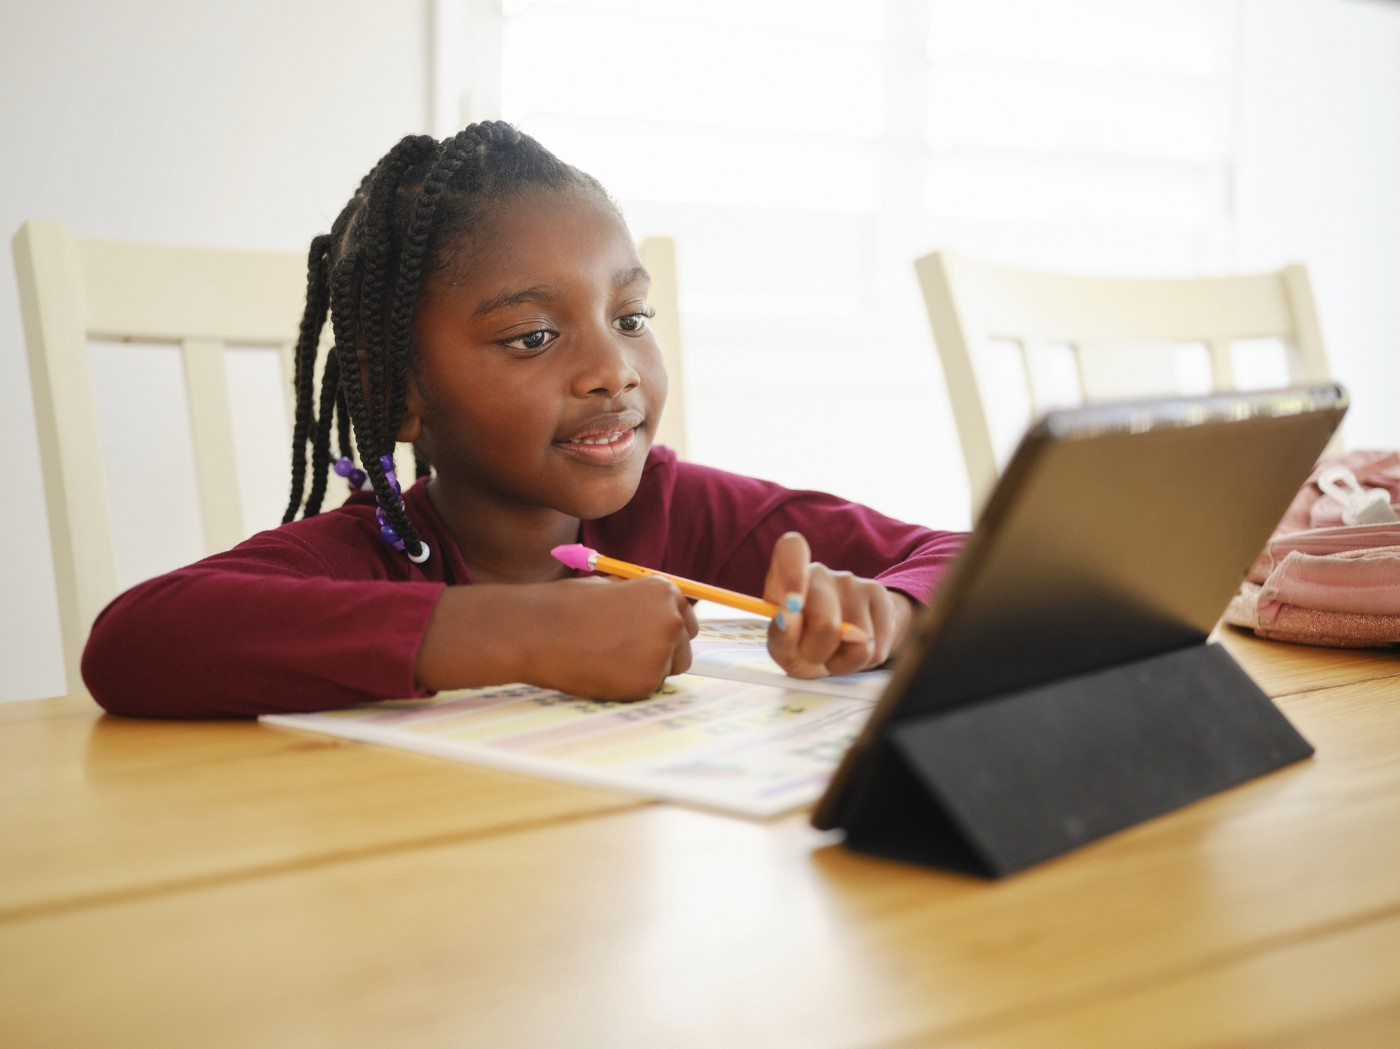 Young Black girl doing homework at home as part of remote learning.